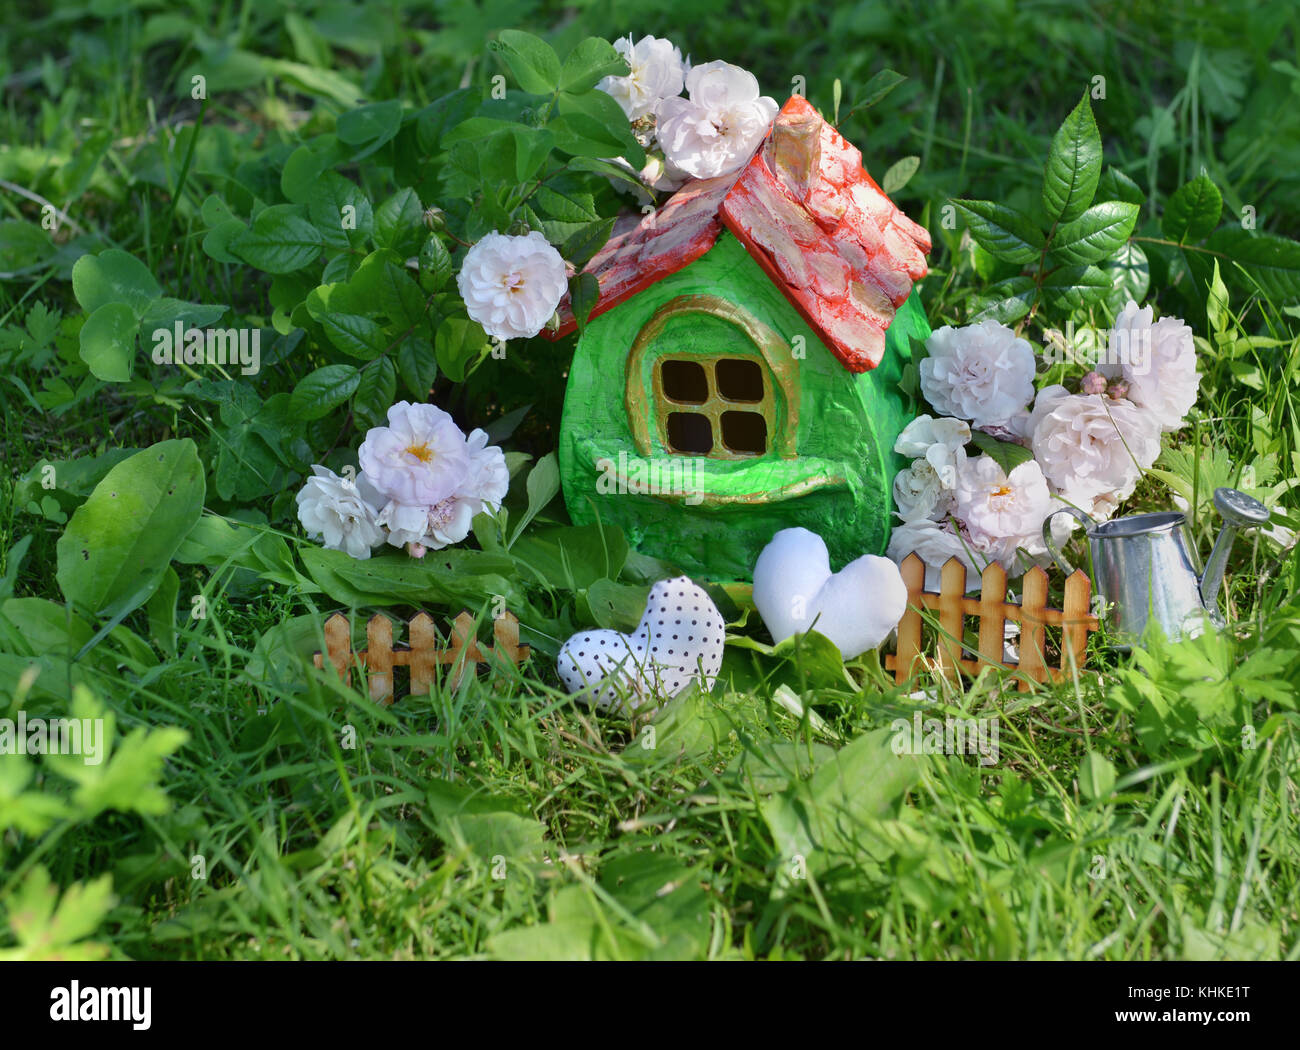 Small cute green house with roses, small fence, hearts and watering can in the garden - Stock Image